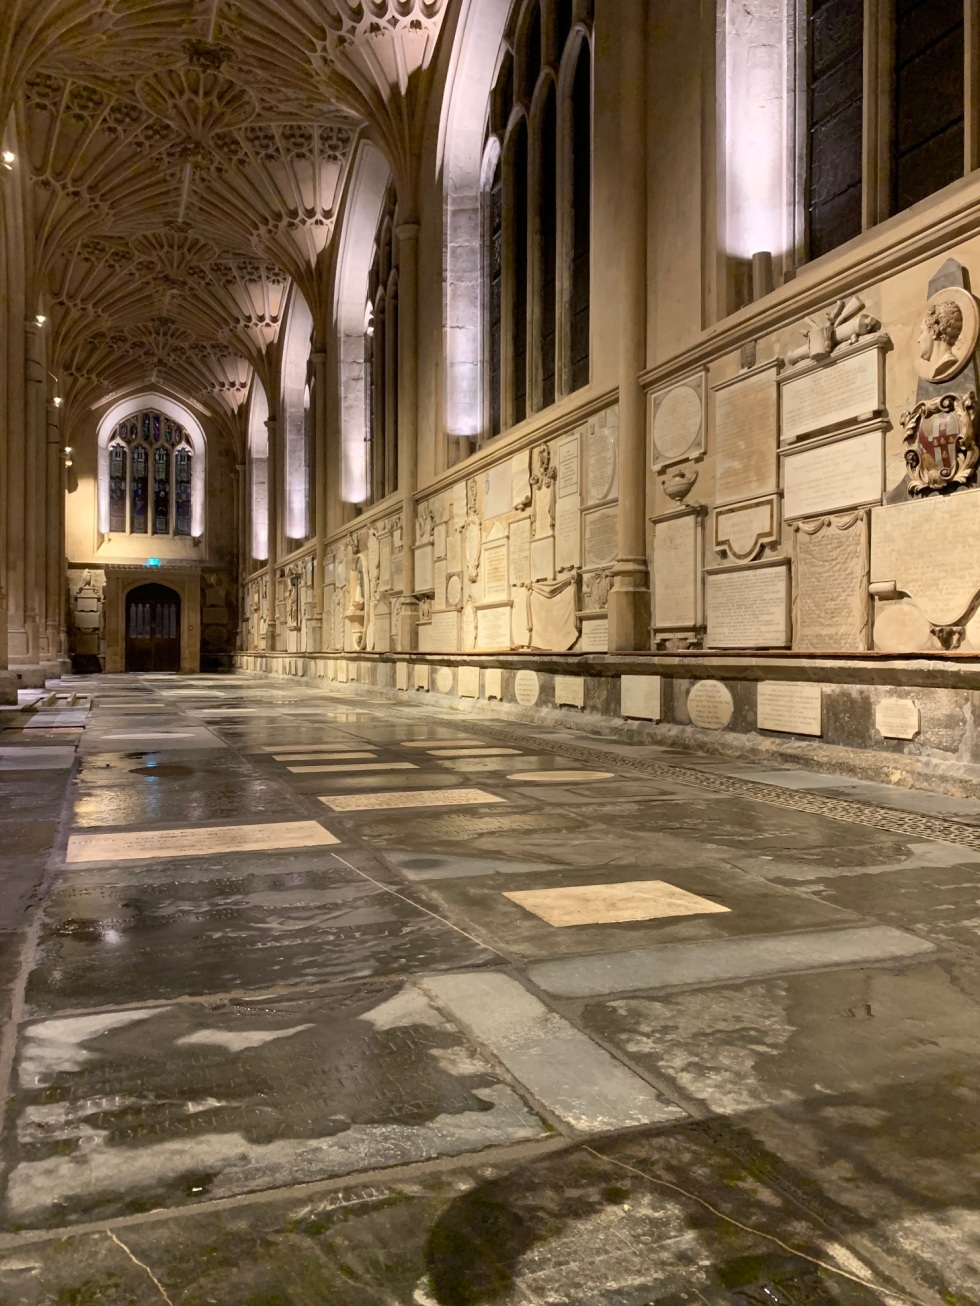 Completion of Phase 2 - North aisle portrait